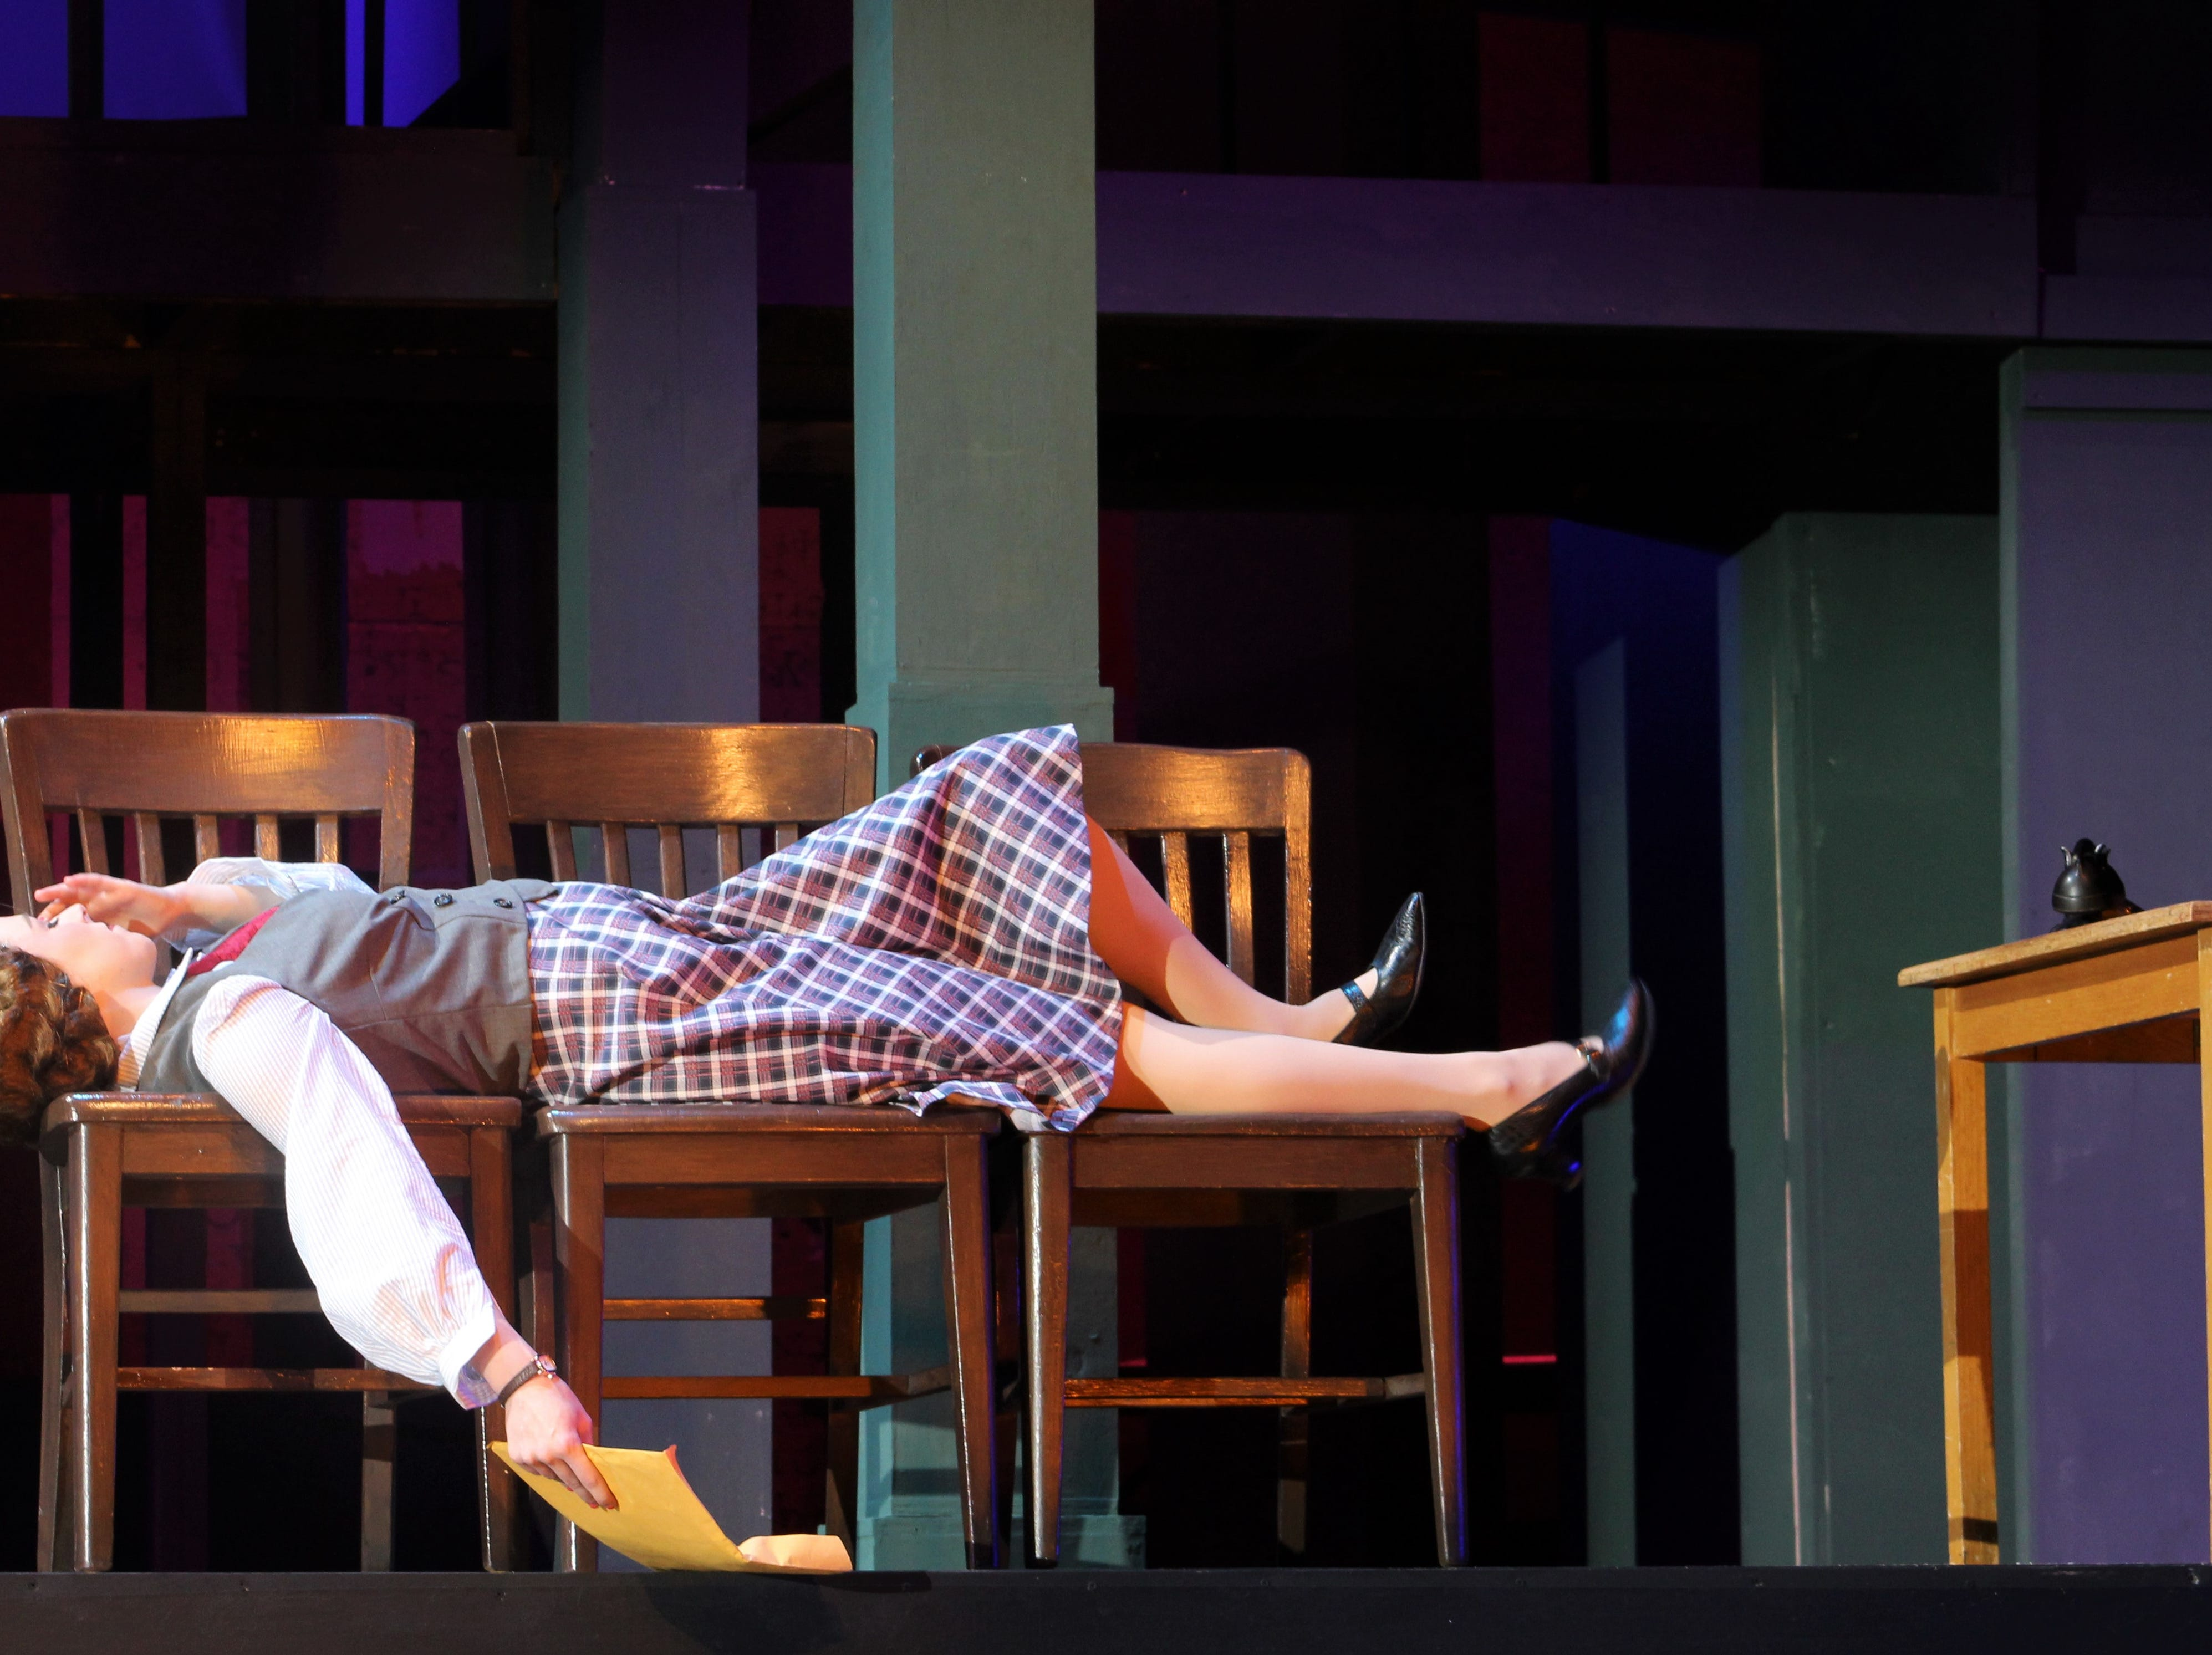 """Ruth Sherwood (Payton Reeves) reclines on vacant chairs after not getting her job interview in this rehearsal scene from """"Wonderful Town,"""" Abilene Christians' 2018 homecoming musical."""